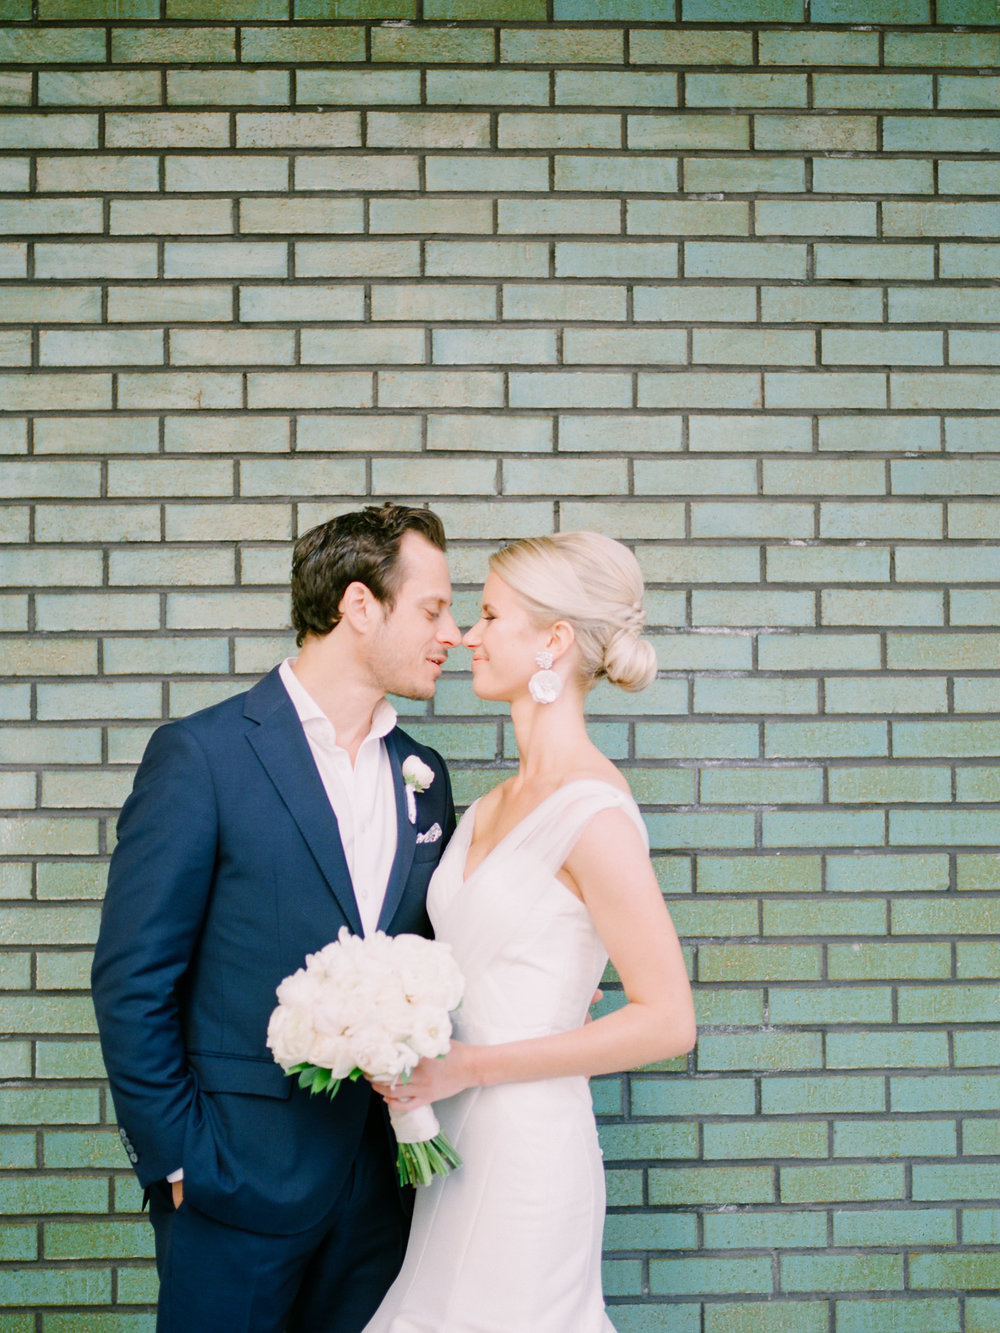 Intimate-NYC_wedding_ by Tanya Isaeva-81.jpg